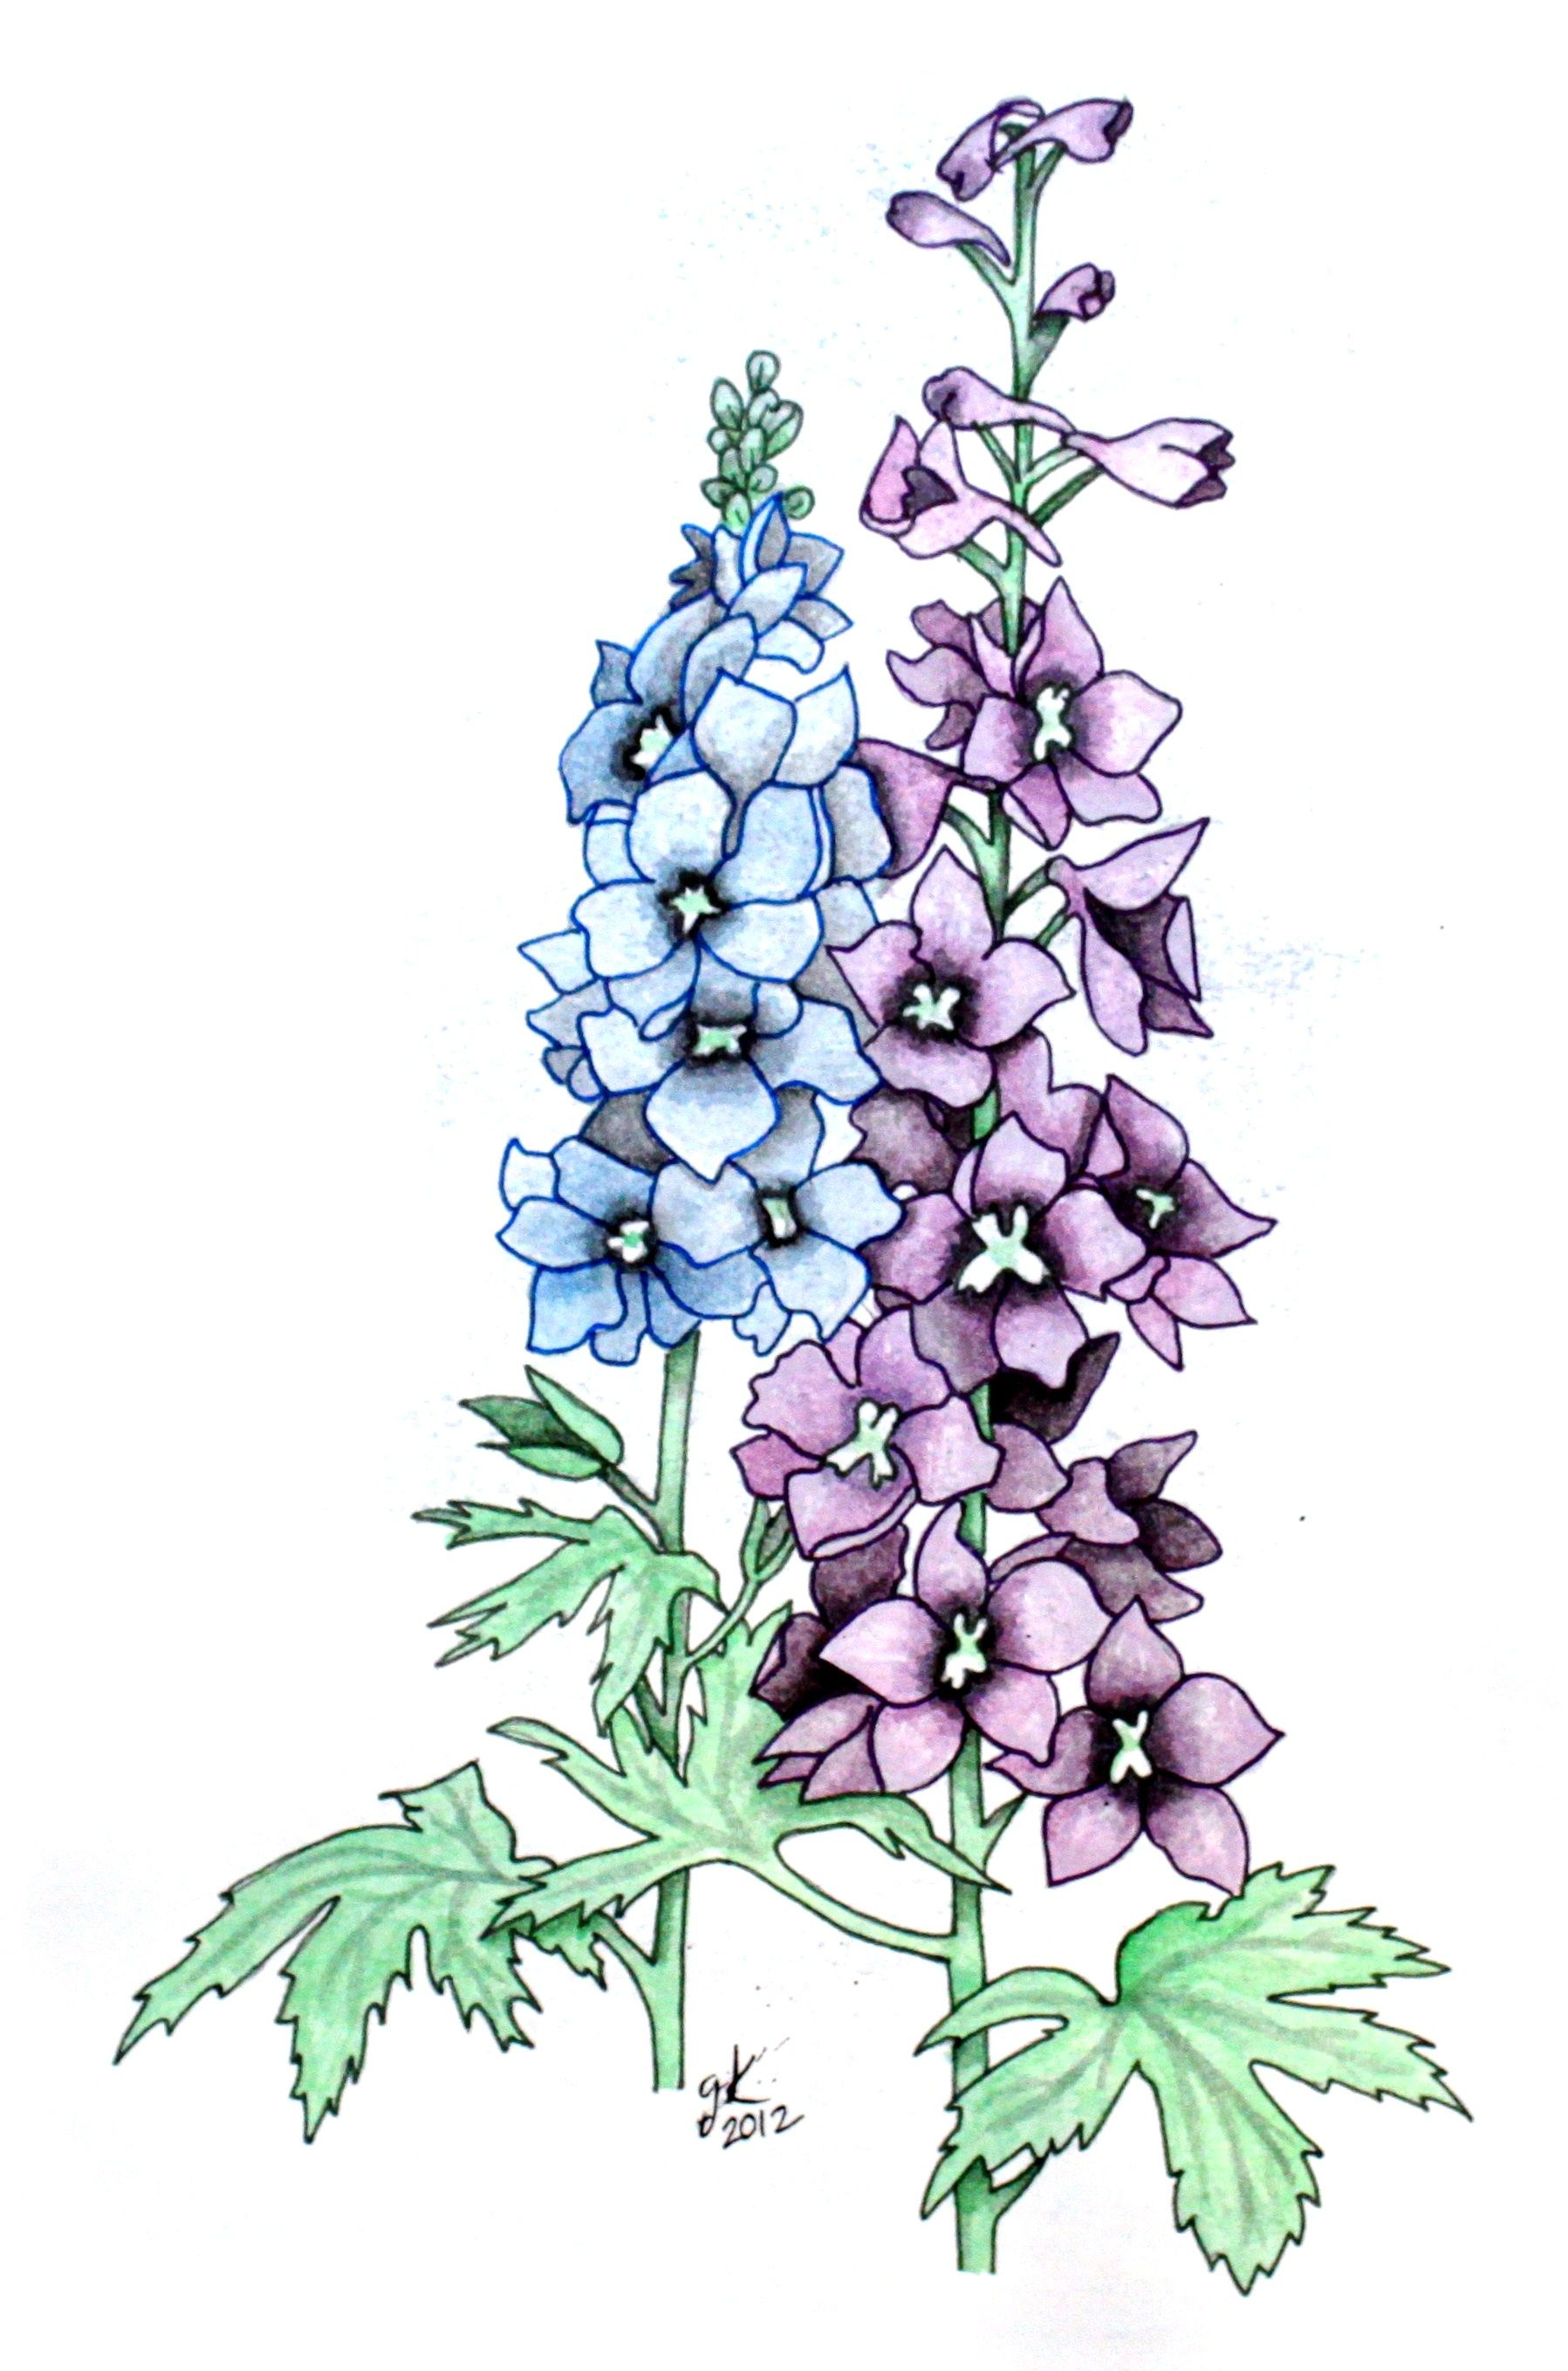 Larkspur Flower Drawing at PaintingValley.com.